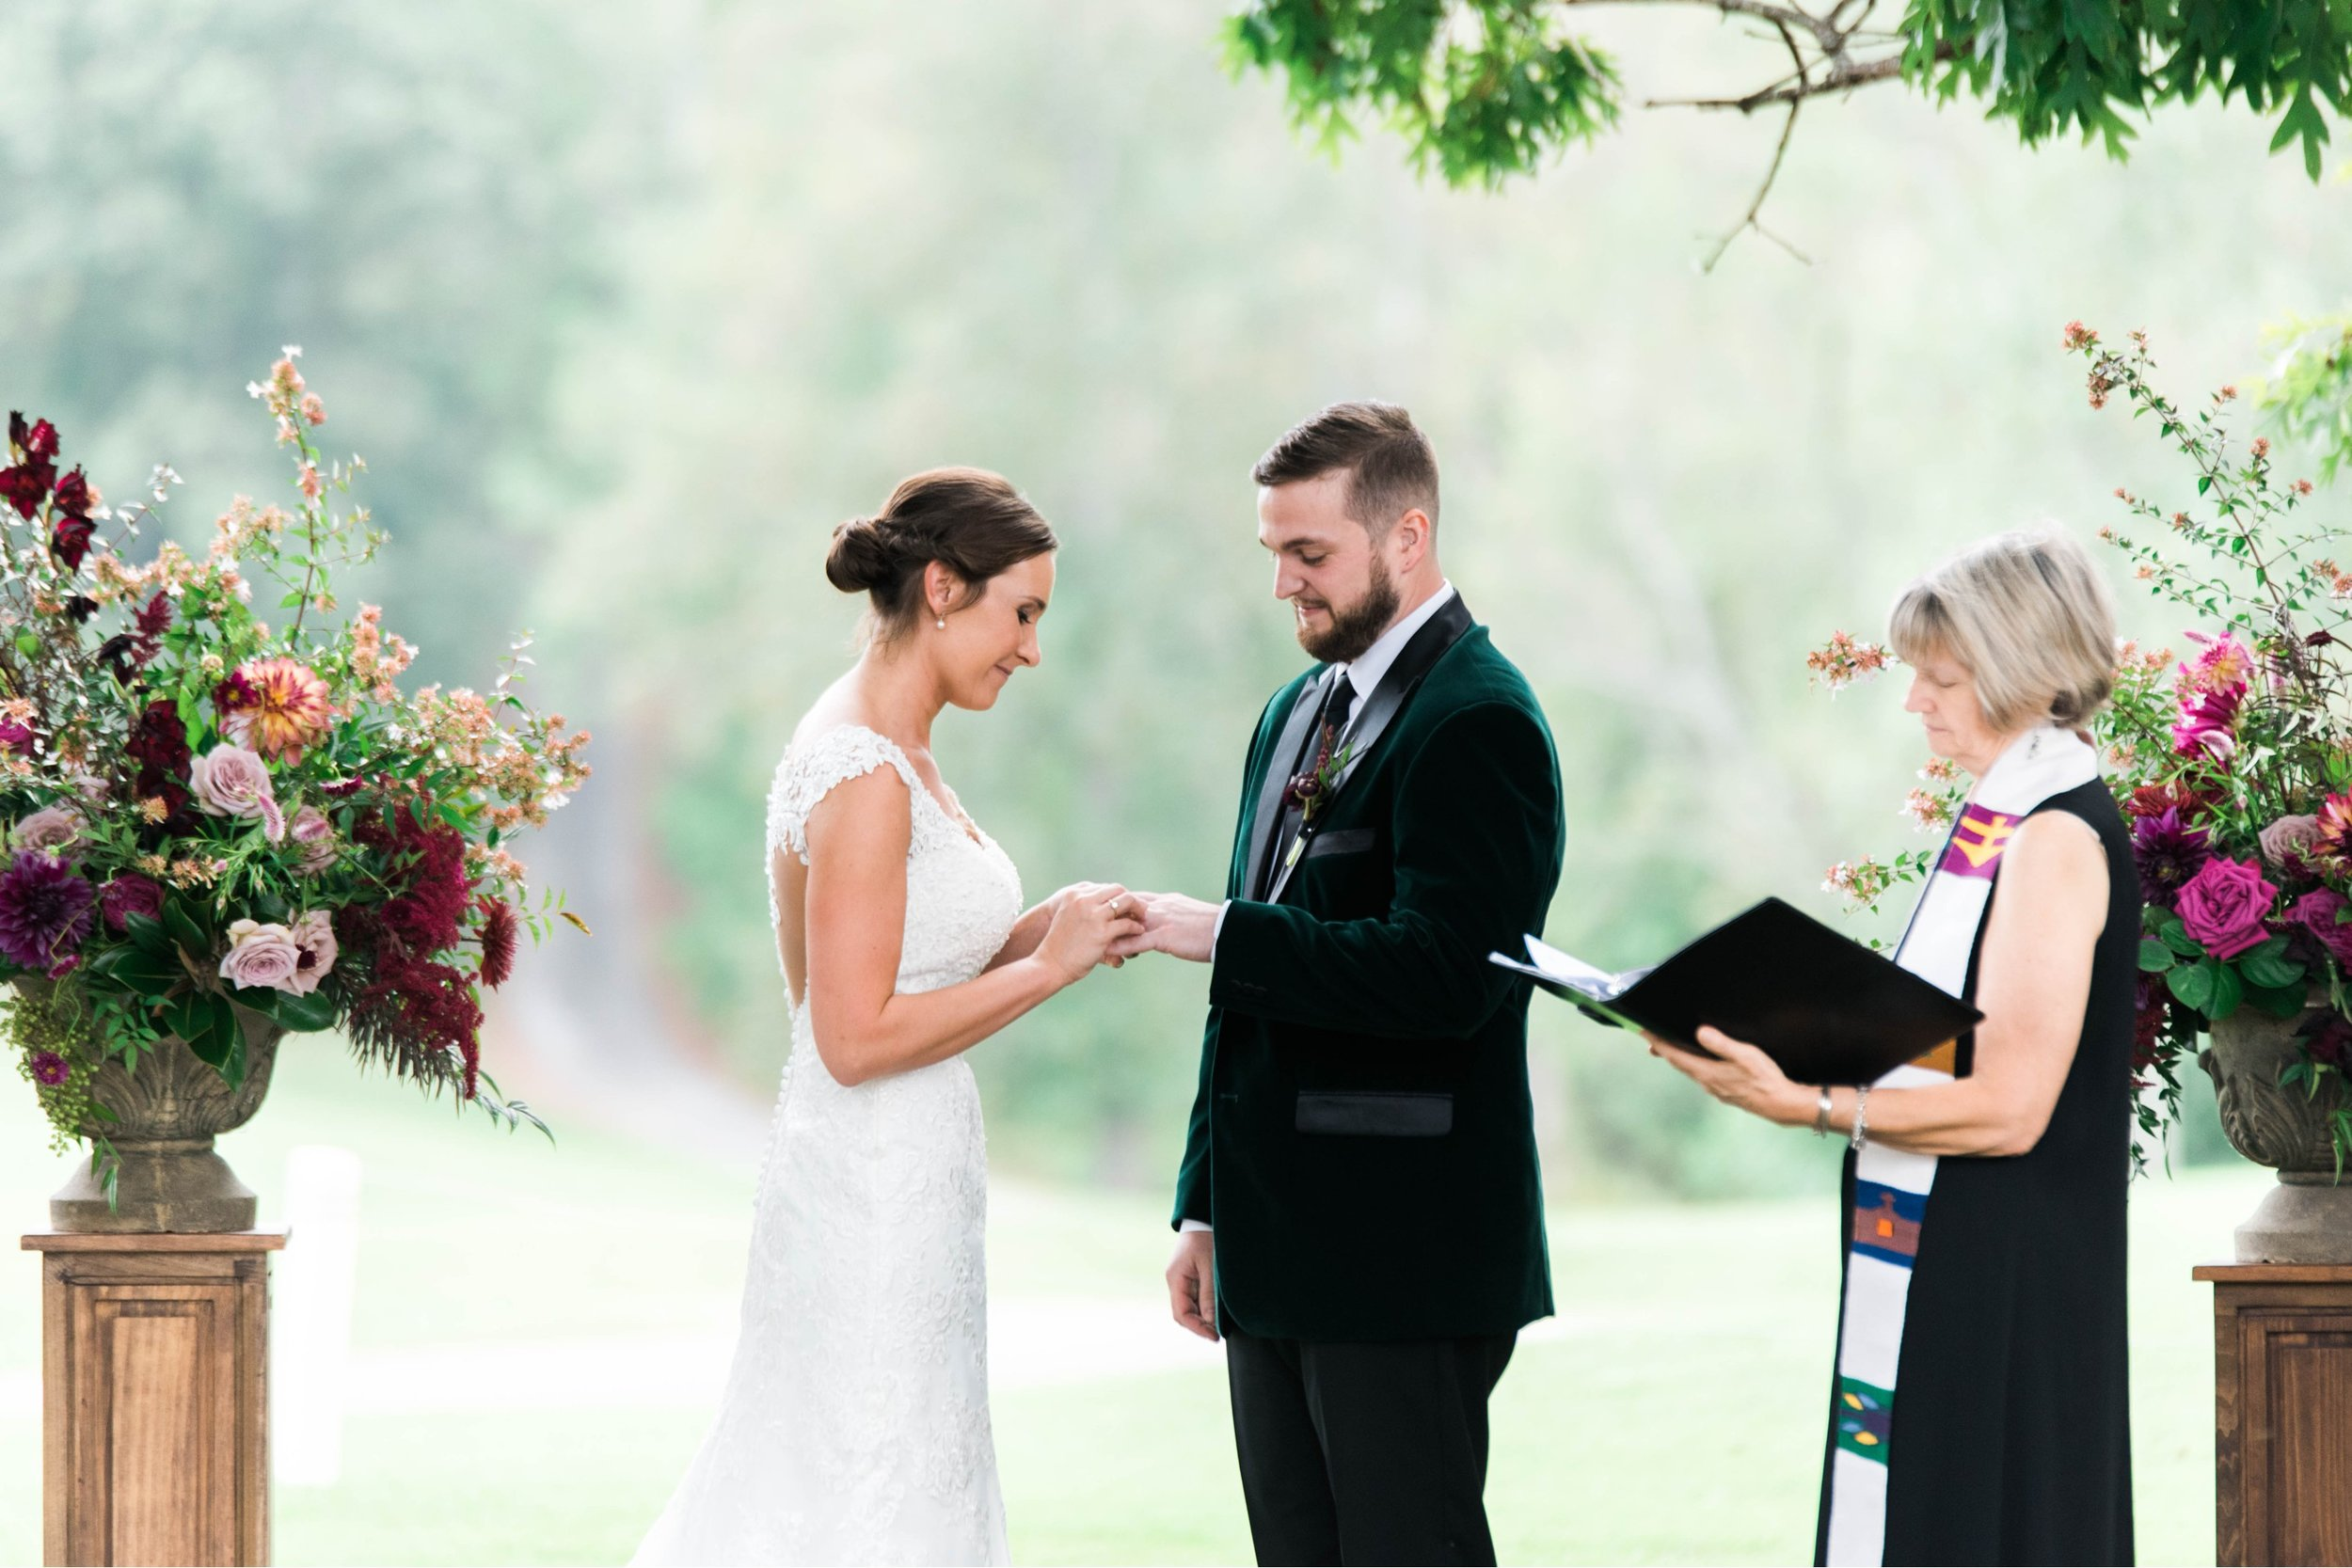 Gordan+Lauren_BoonsboroCountryClubWedding_Virginiaweddingphotographer_LynchburgVi 10.jpg